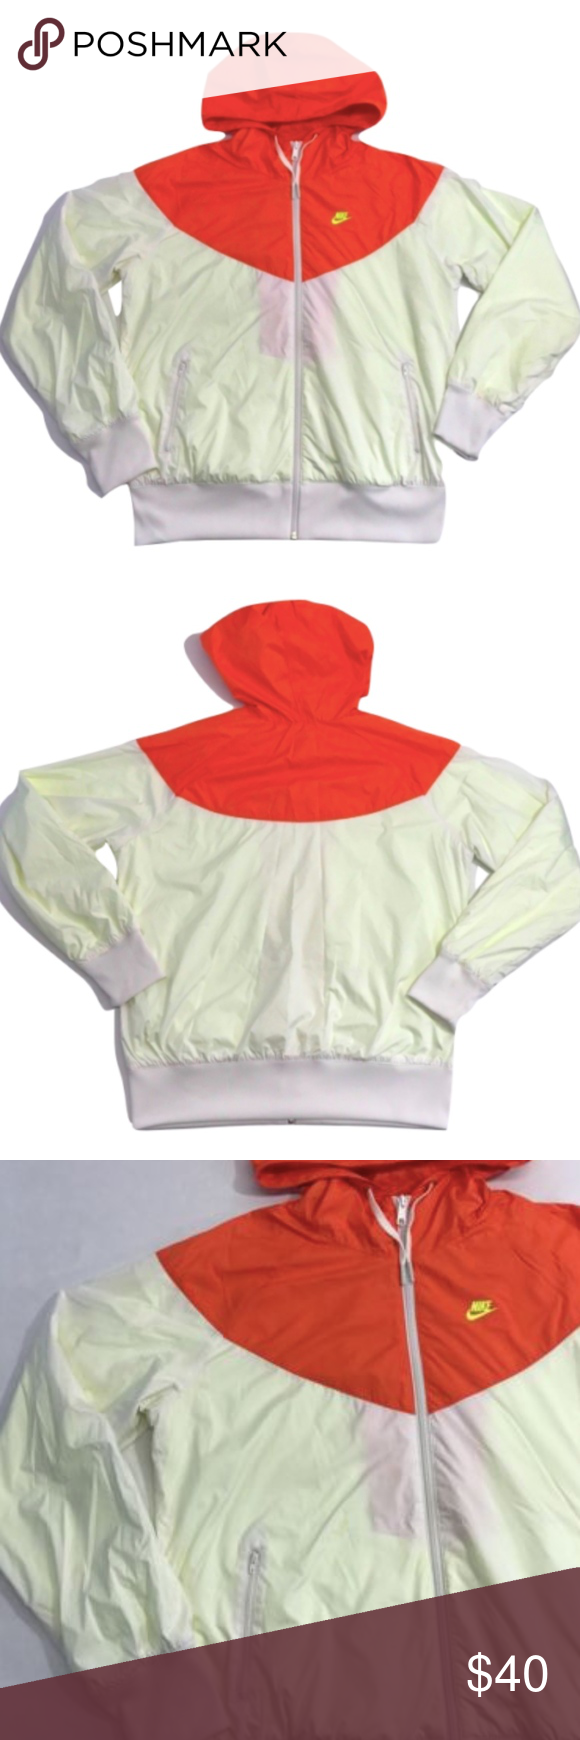 14457eec9047 Nike Windrunner Jacket White Orange Neon Nike Womens Windrunner Jacket XL  White Orange Neon Windbreaker Hoodie